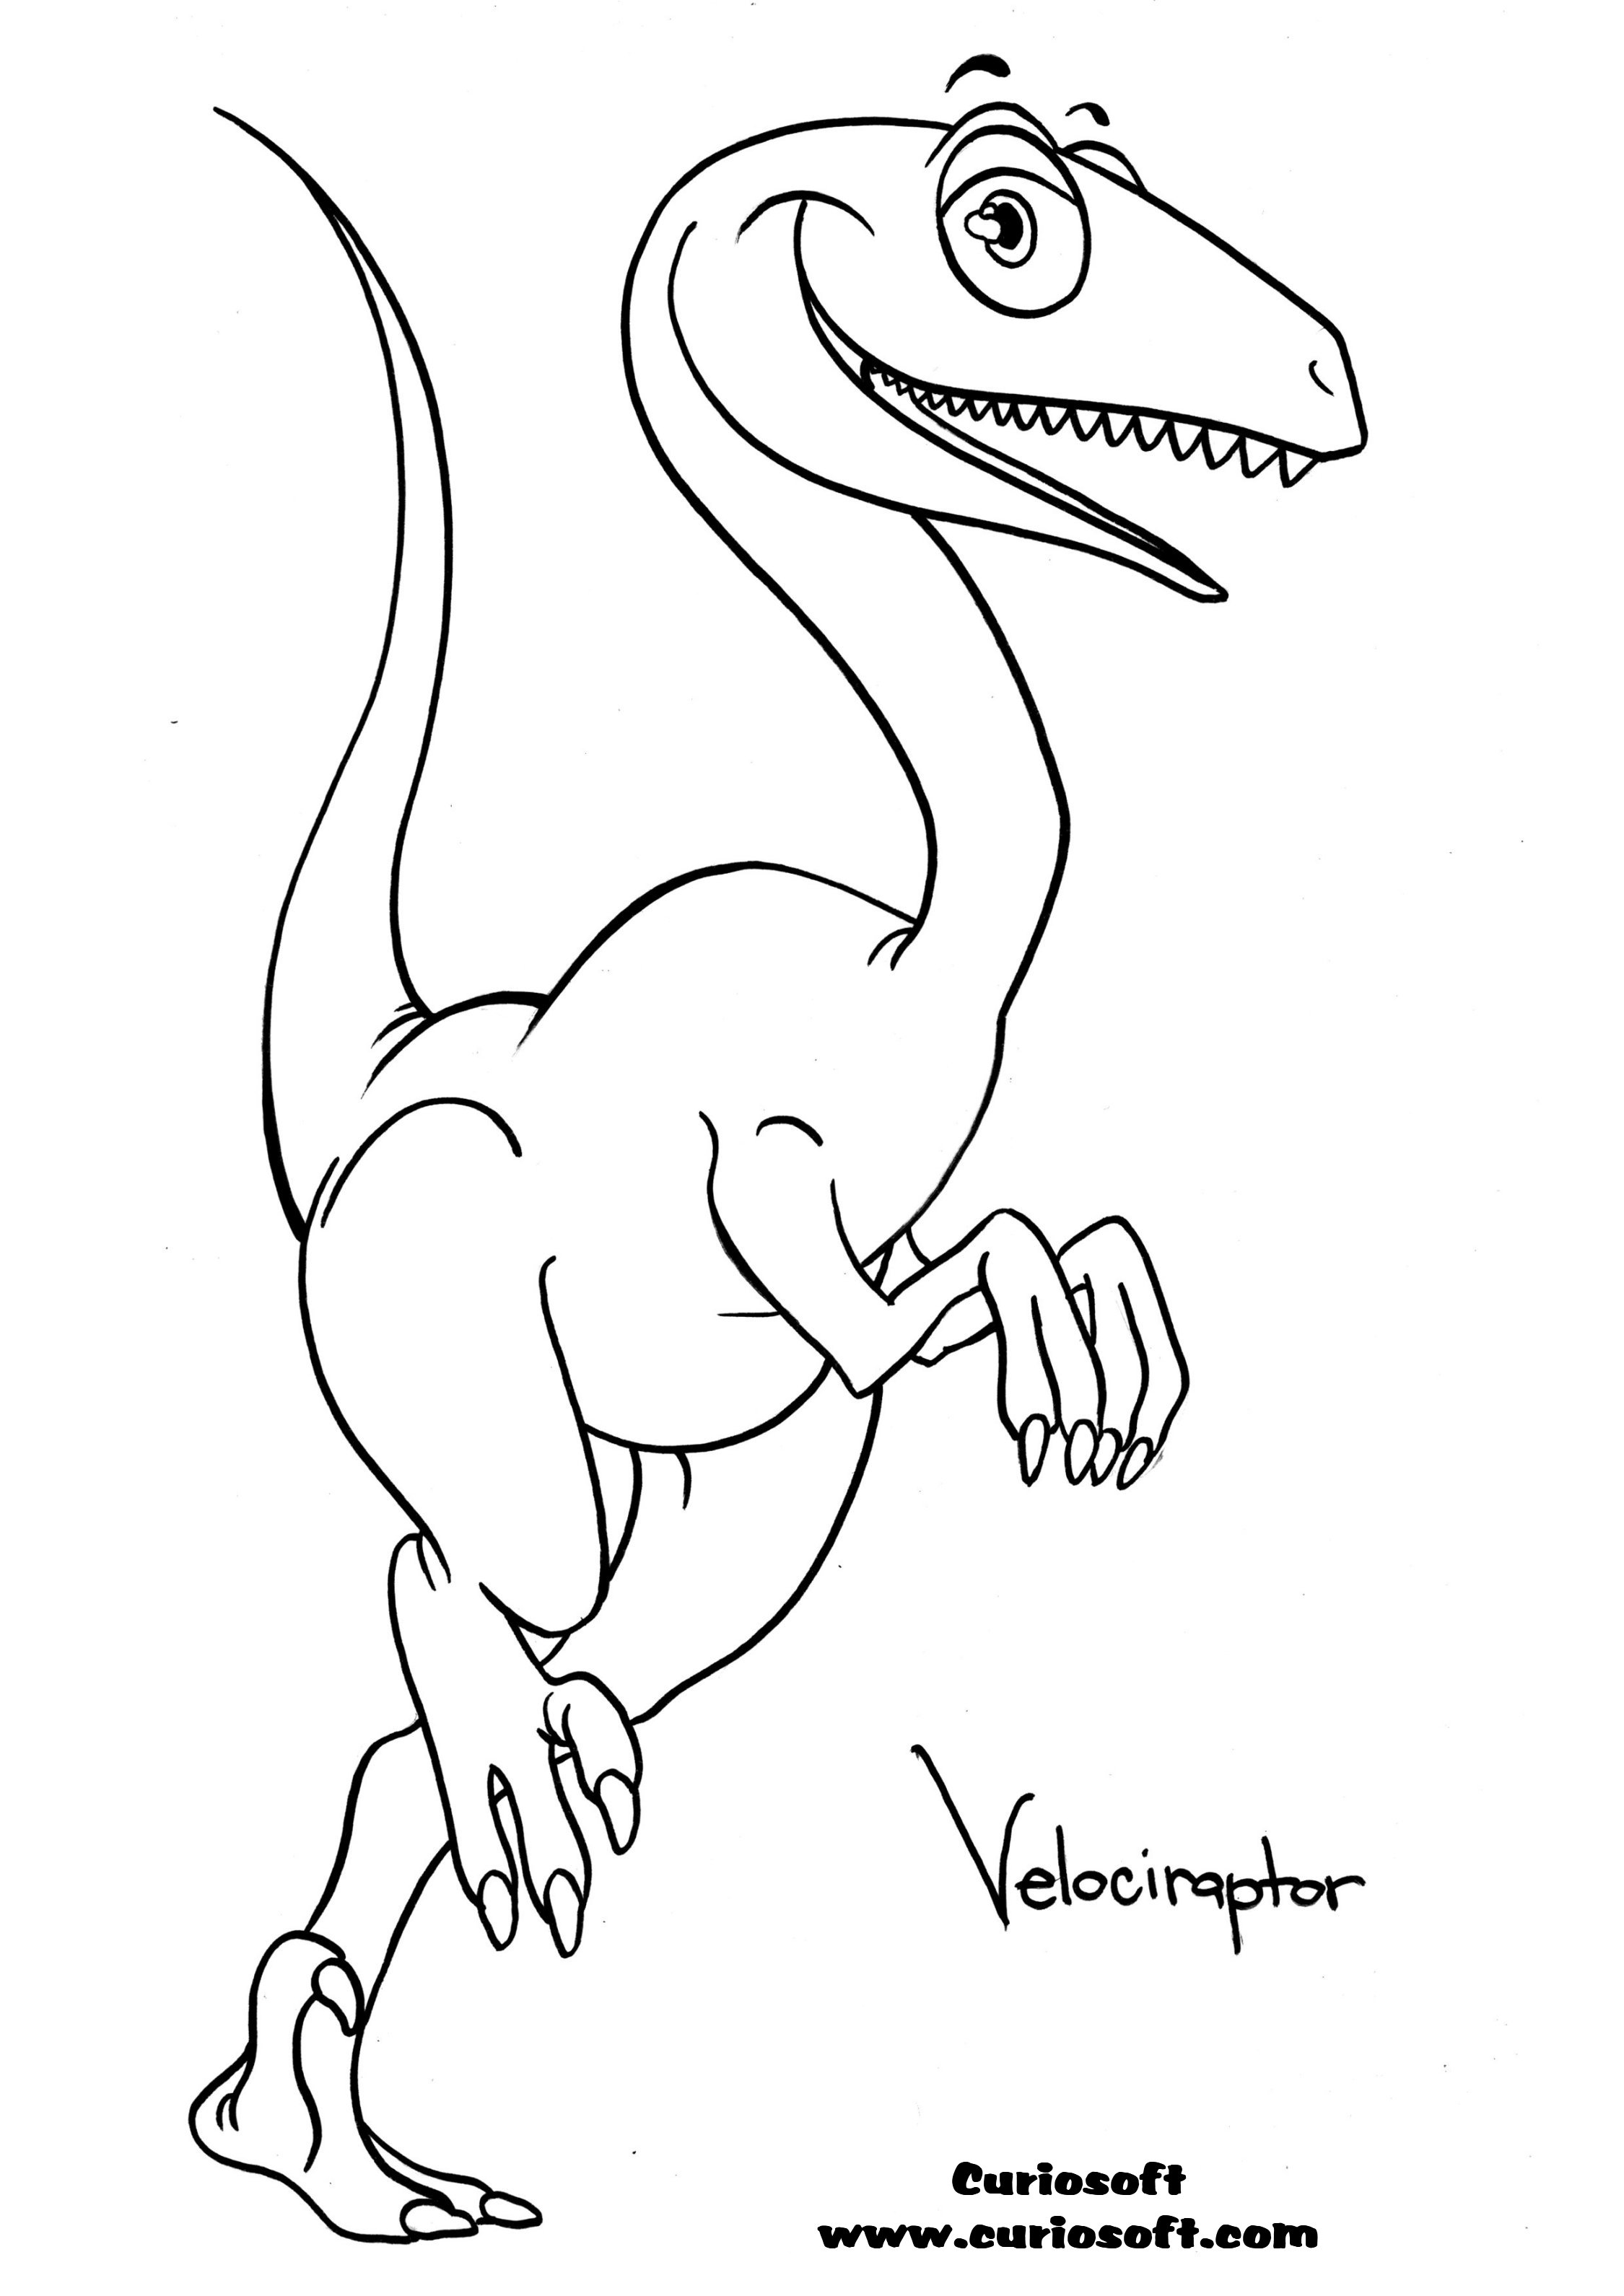 dinosaur coloring pages velociraptor sounds - photo#23